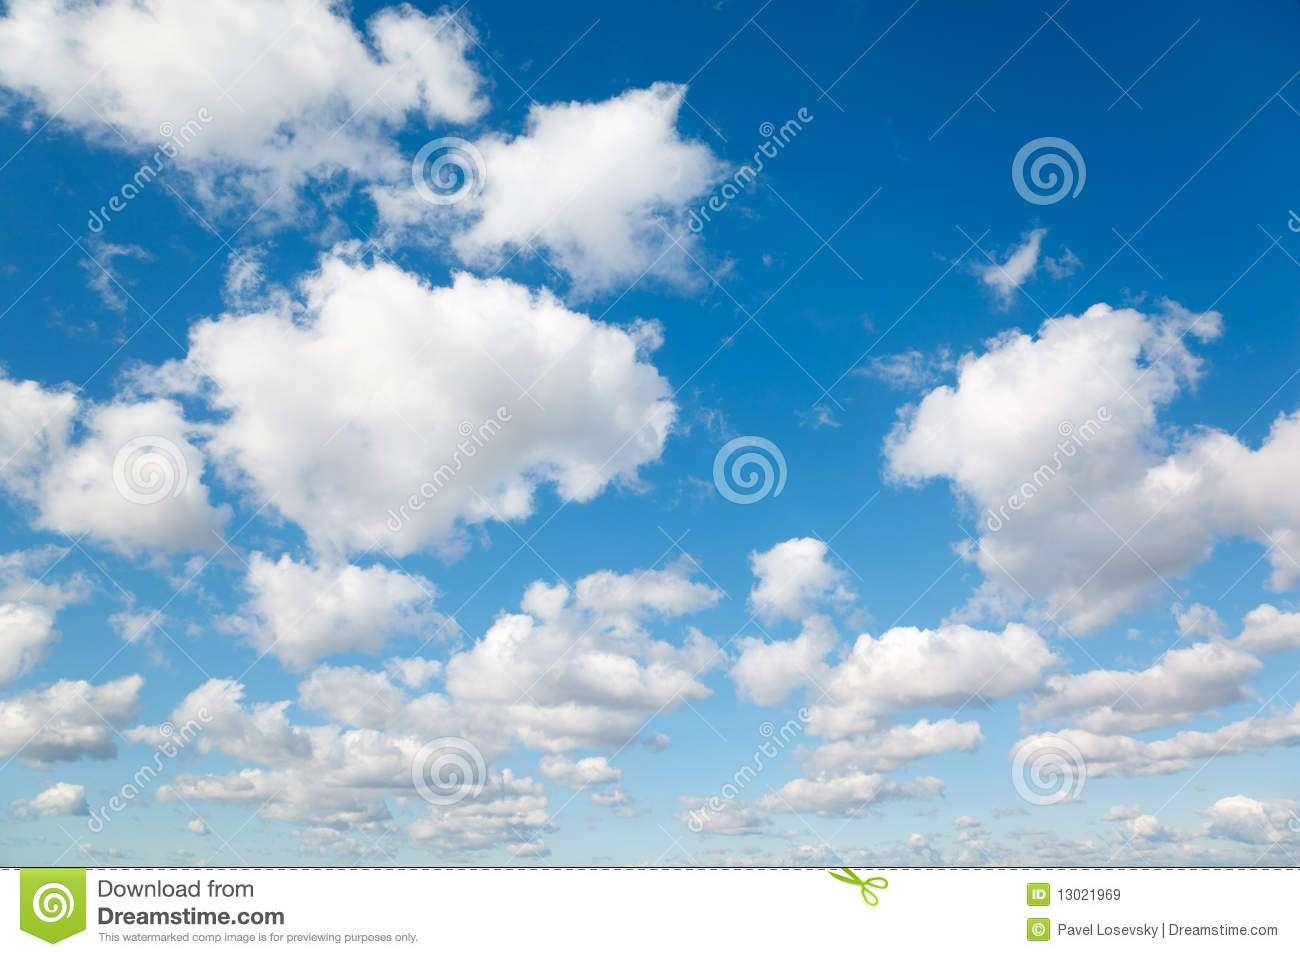 White, fluffy clouds in blue sky.